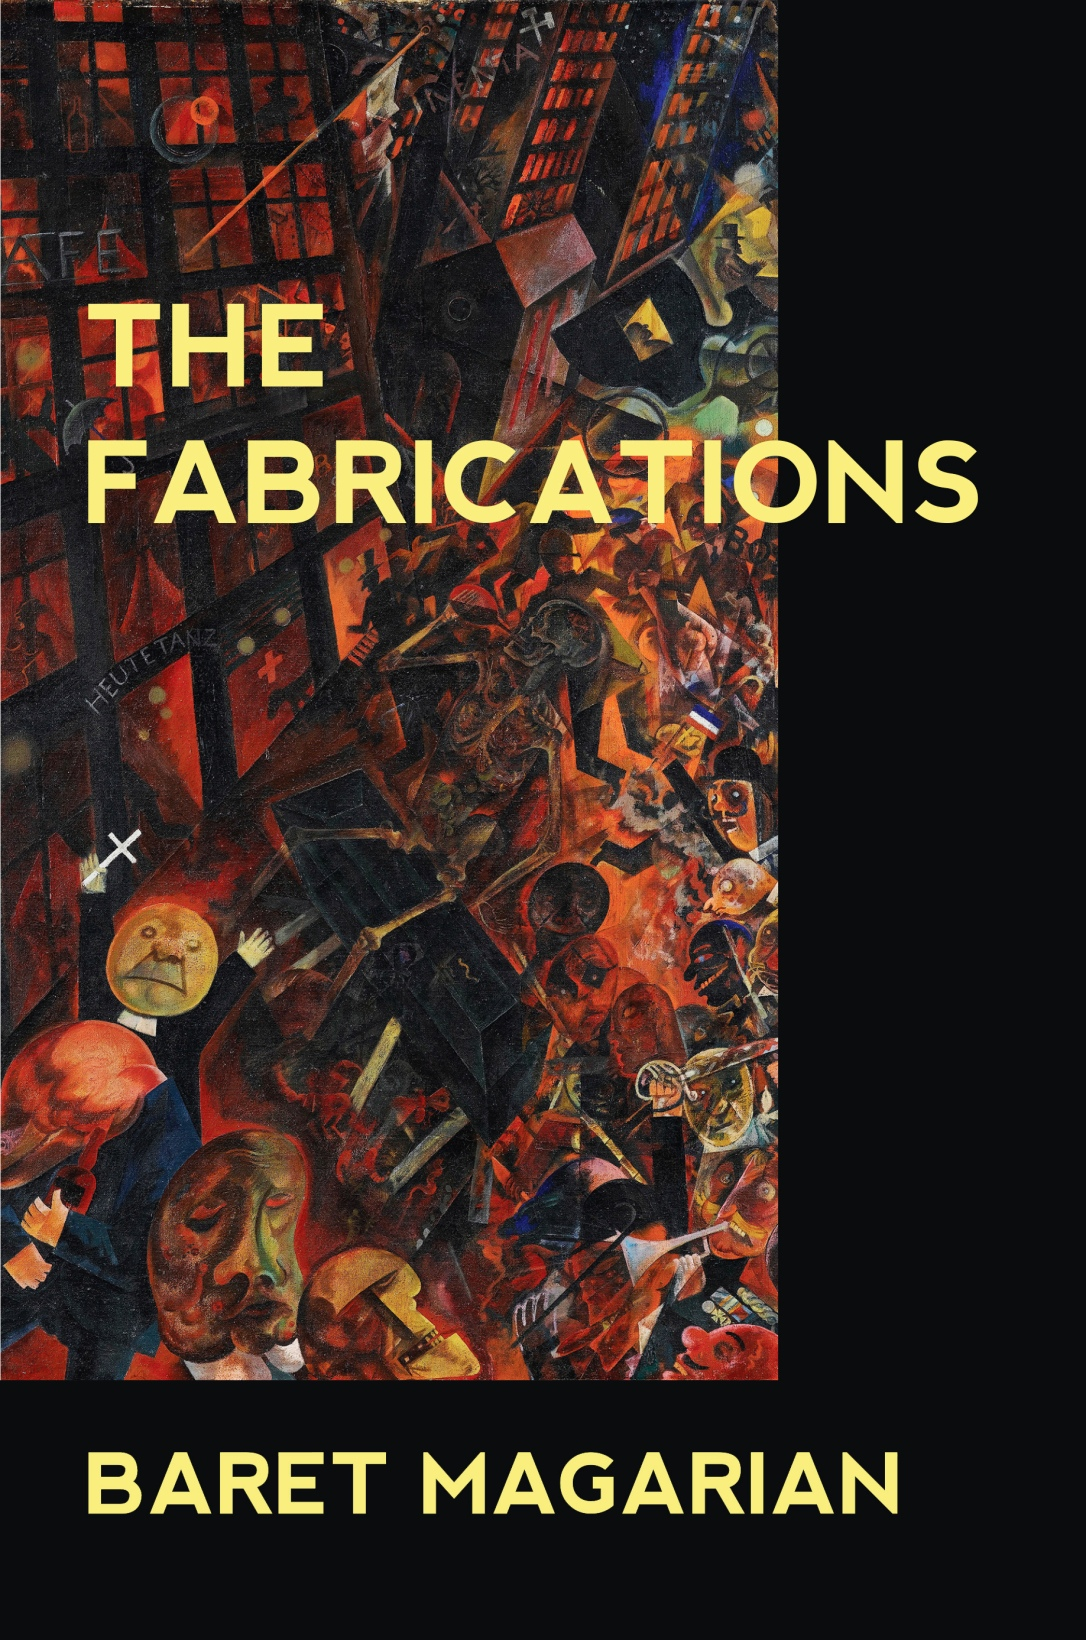 The Fabrications Front cover***